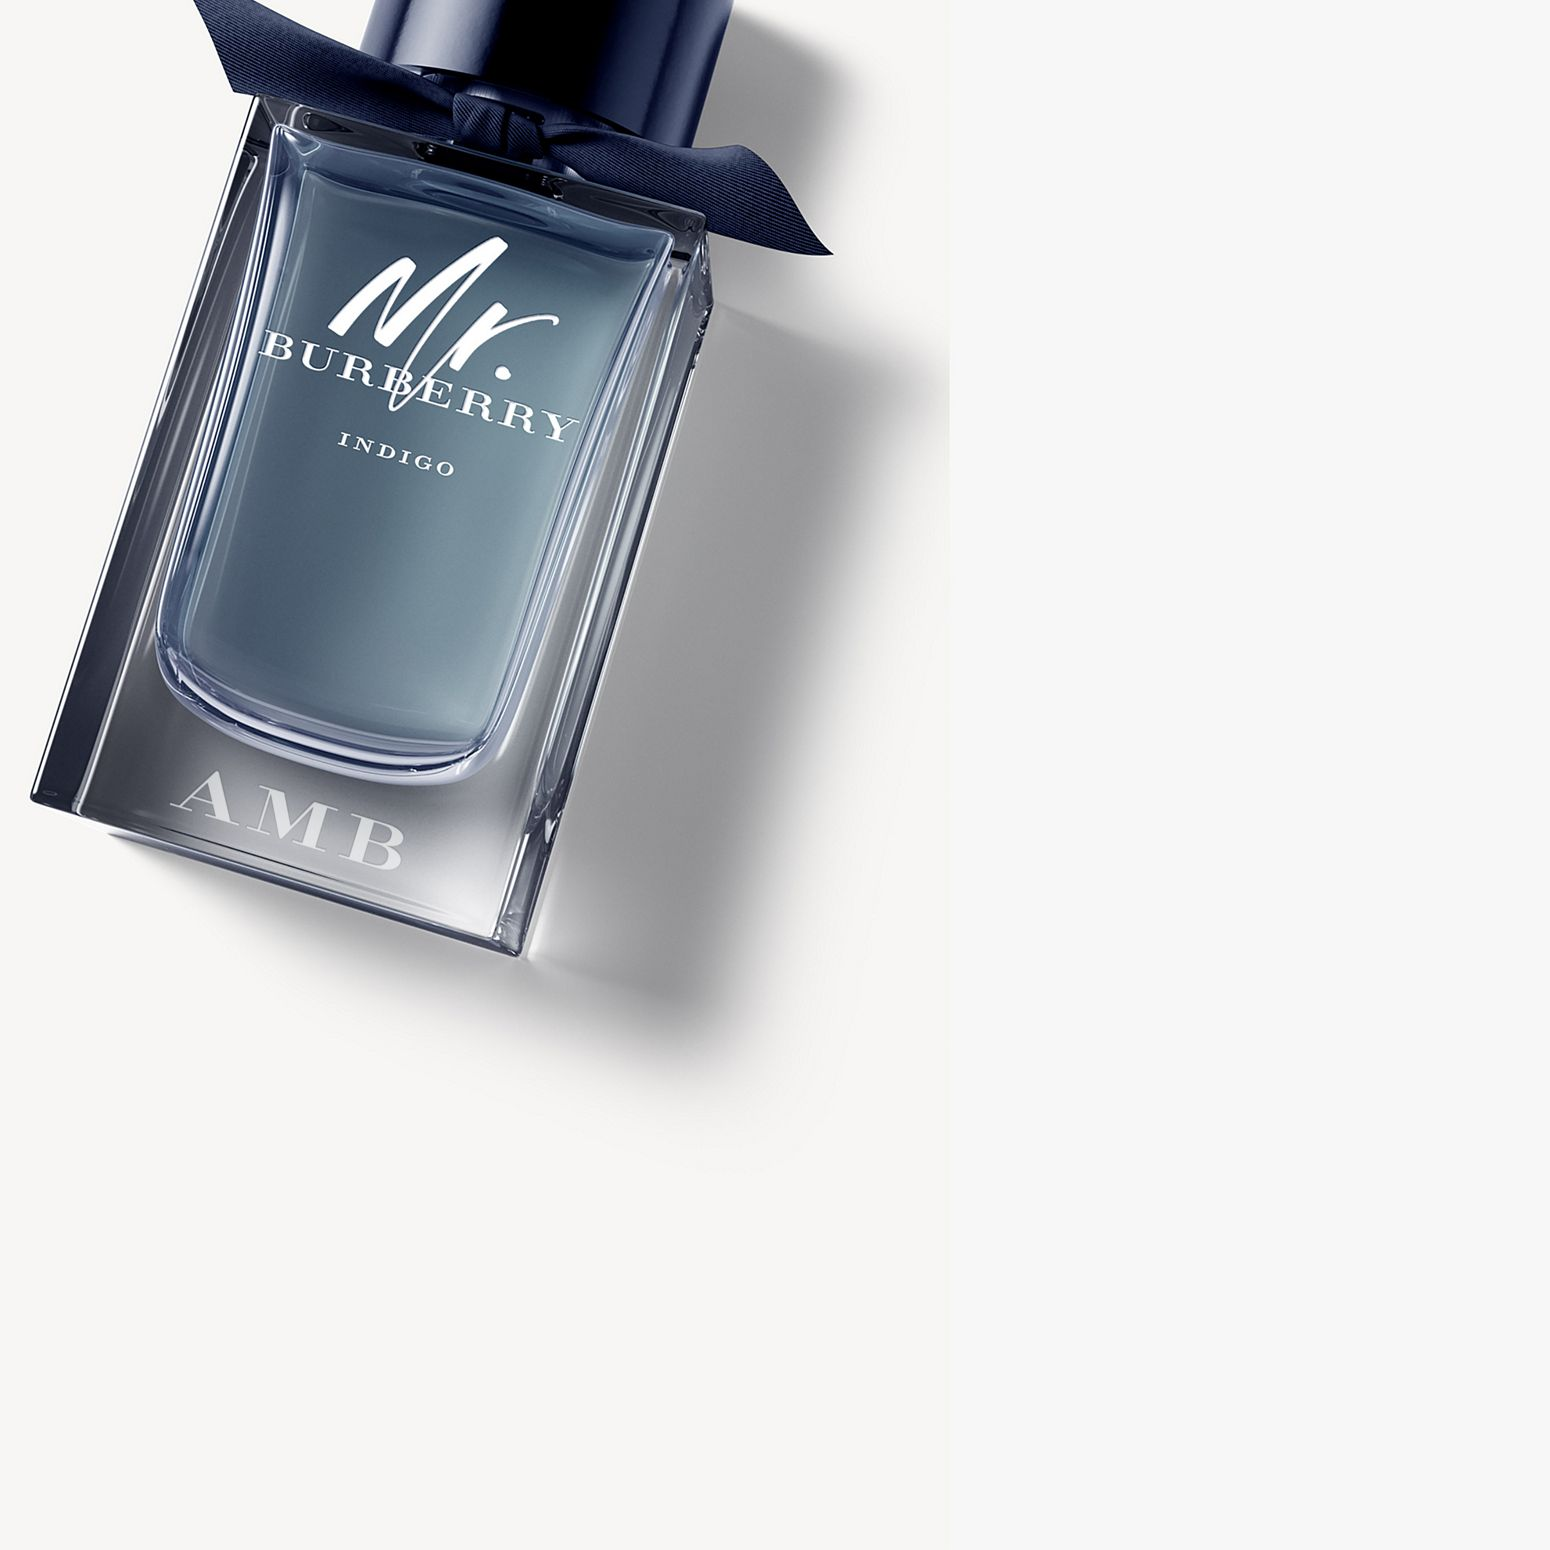 Eau de Toilette Mr. Burberry Indigo 150 ml - Homme | Burberry - photo de la galerie 0